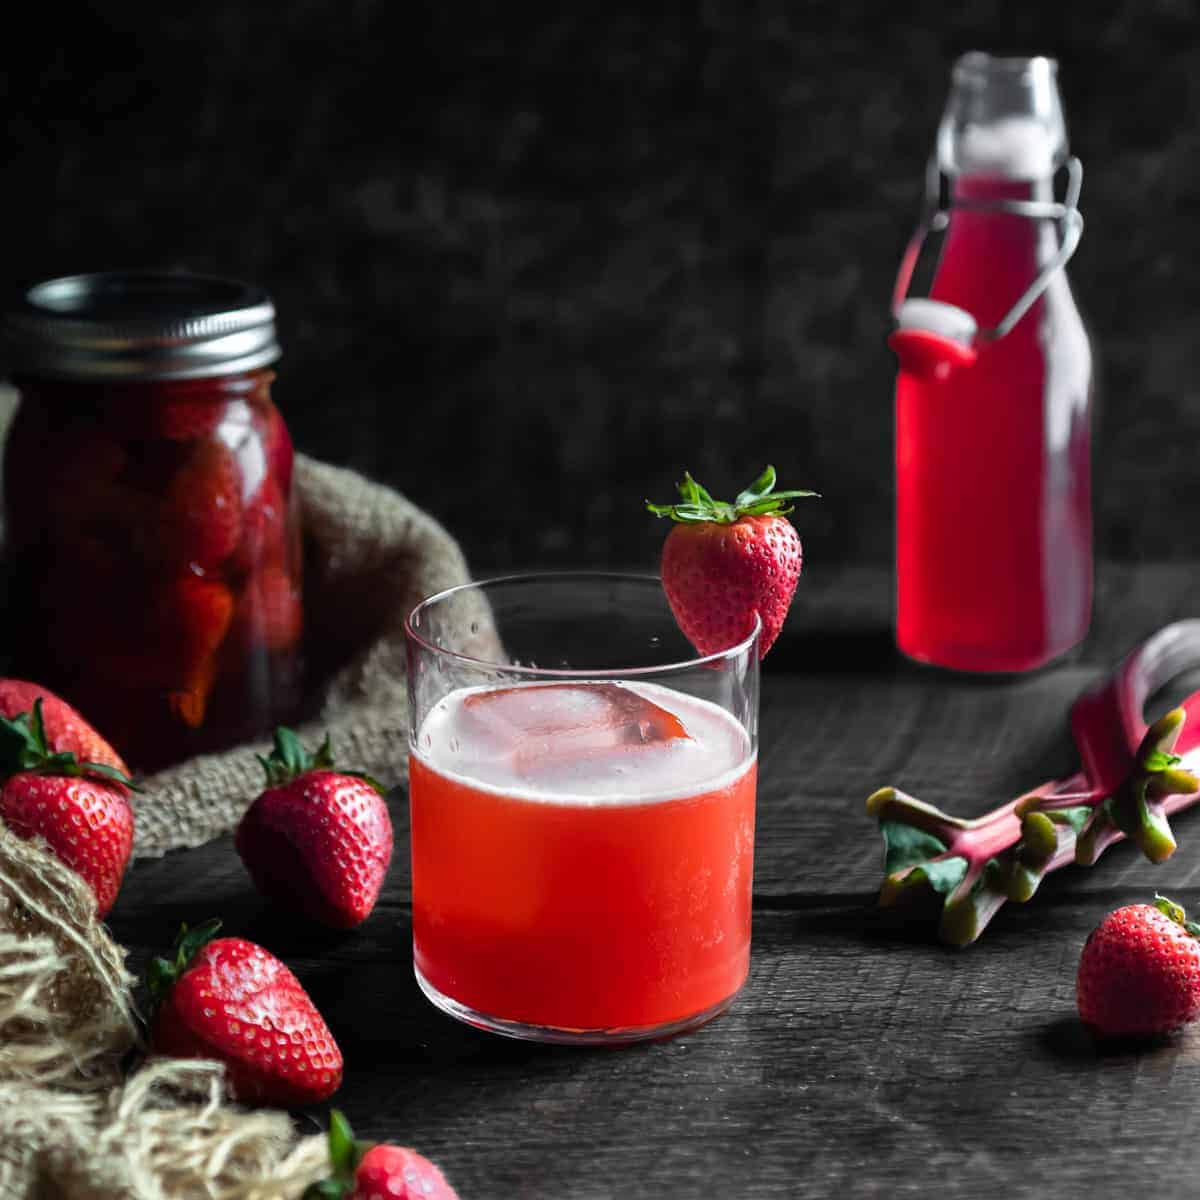 A strawberry rhubarb whiskey sour with a strawberry garnish. A jar of strawberry infused whiskey, fresh strawberries, stalks of rhubarb and a bottle of rhubarb syrup are in the background.